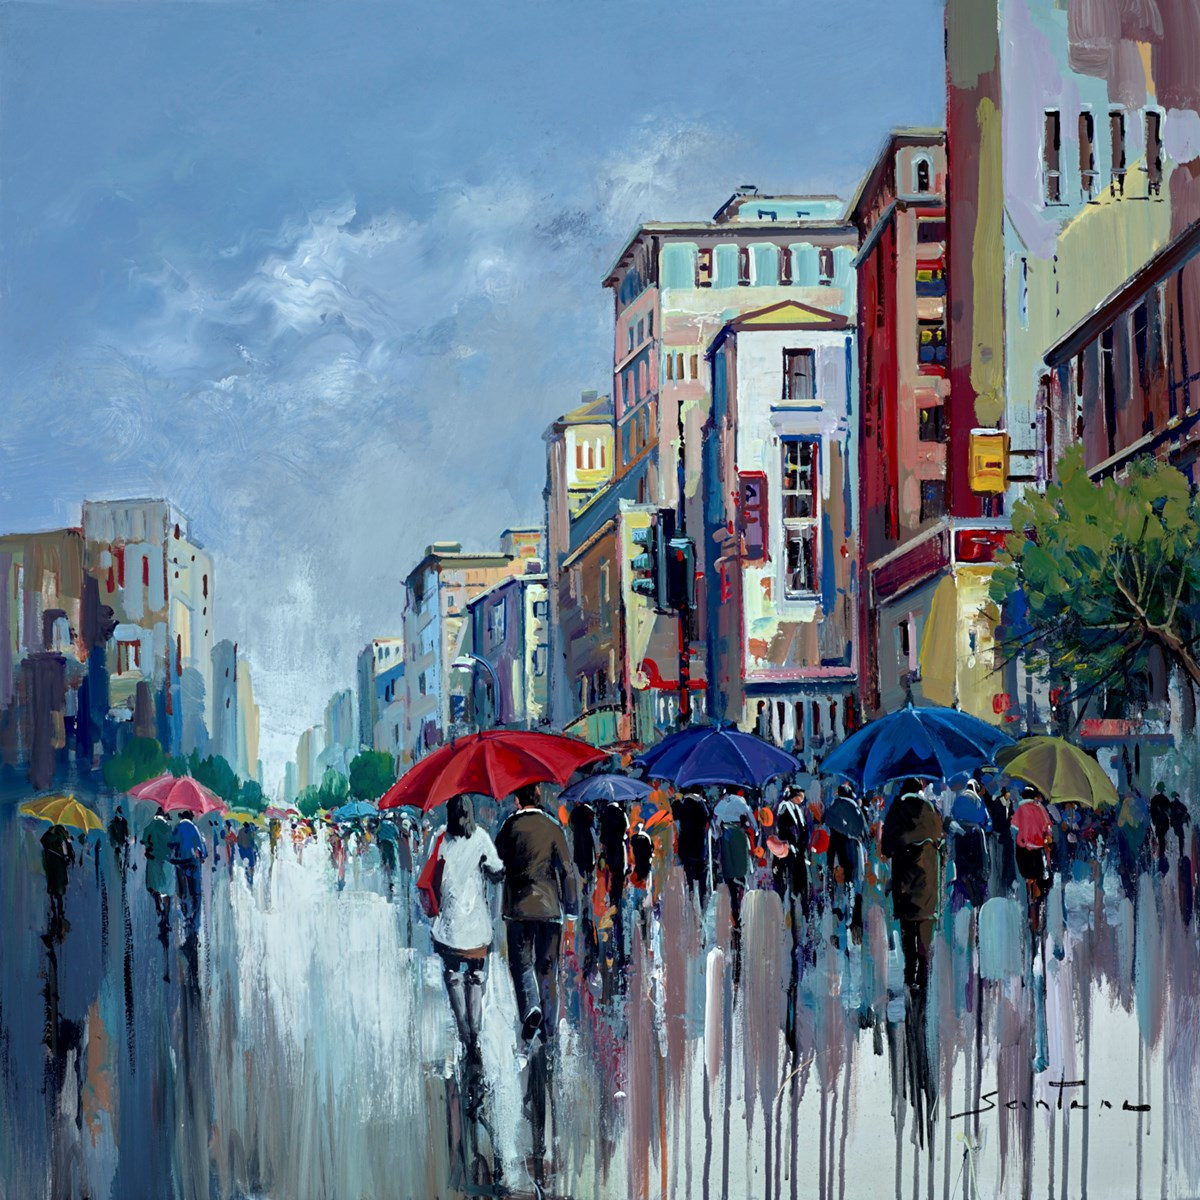 City Streets III by santana -  sized 32x32 inches. Available from Whitewall Galleries